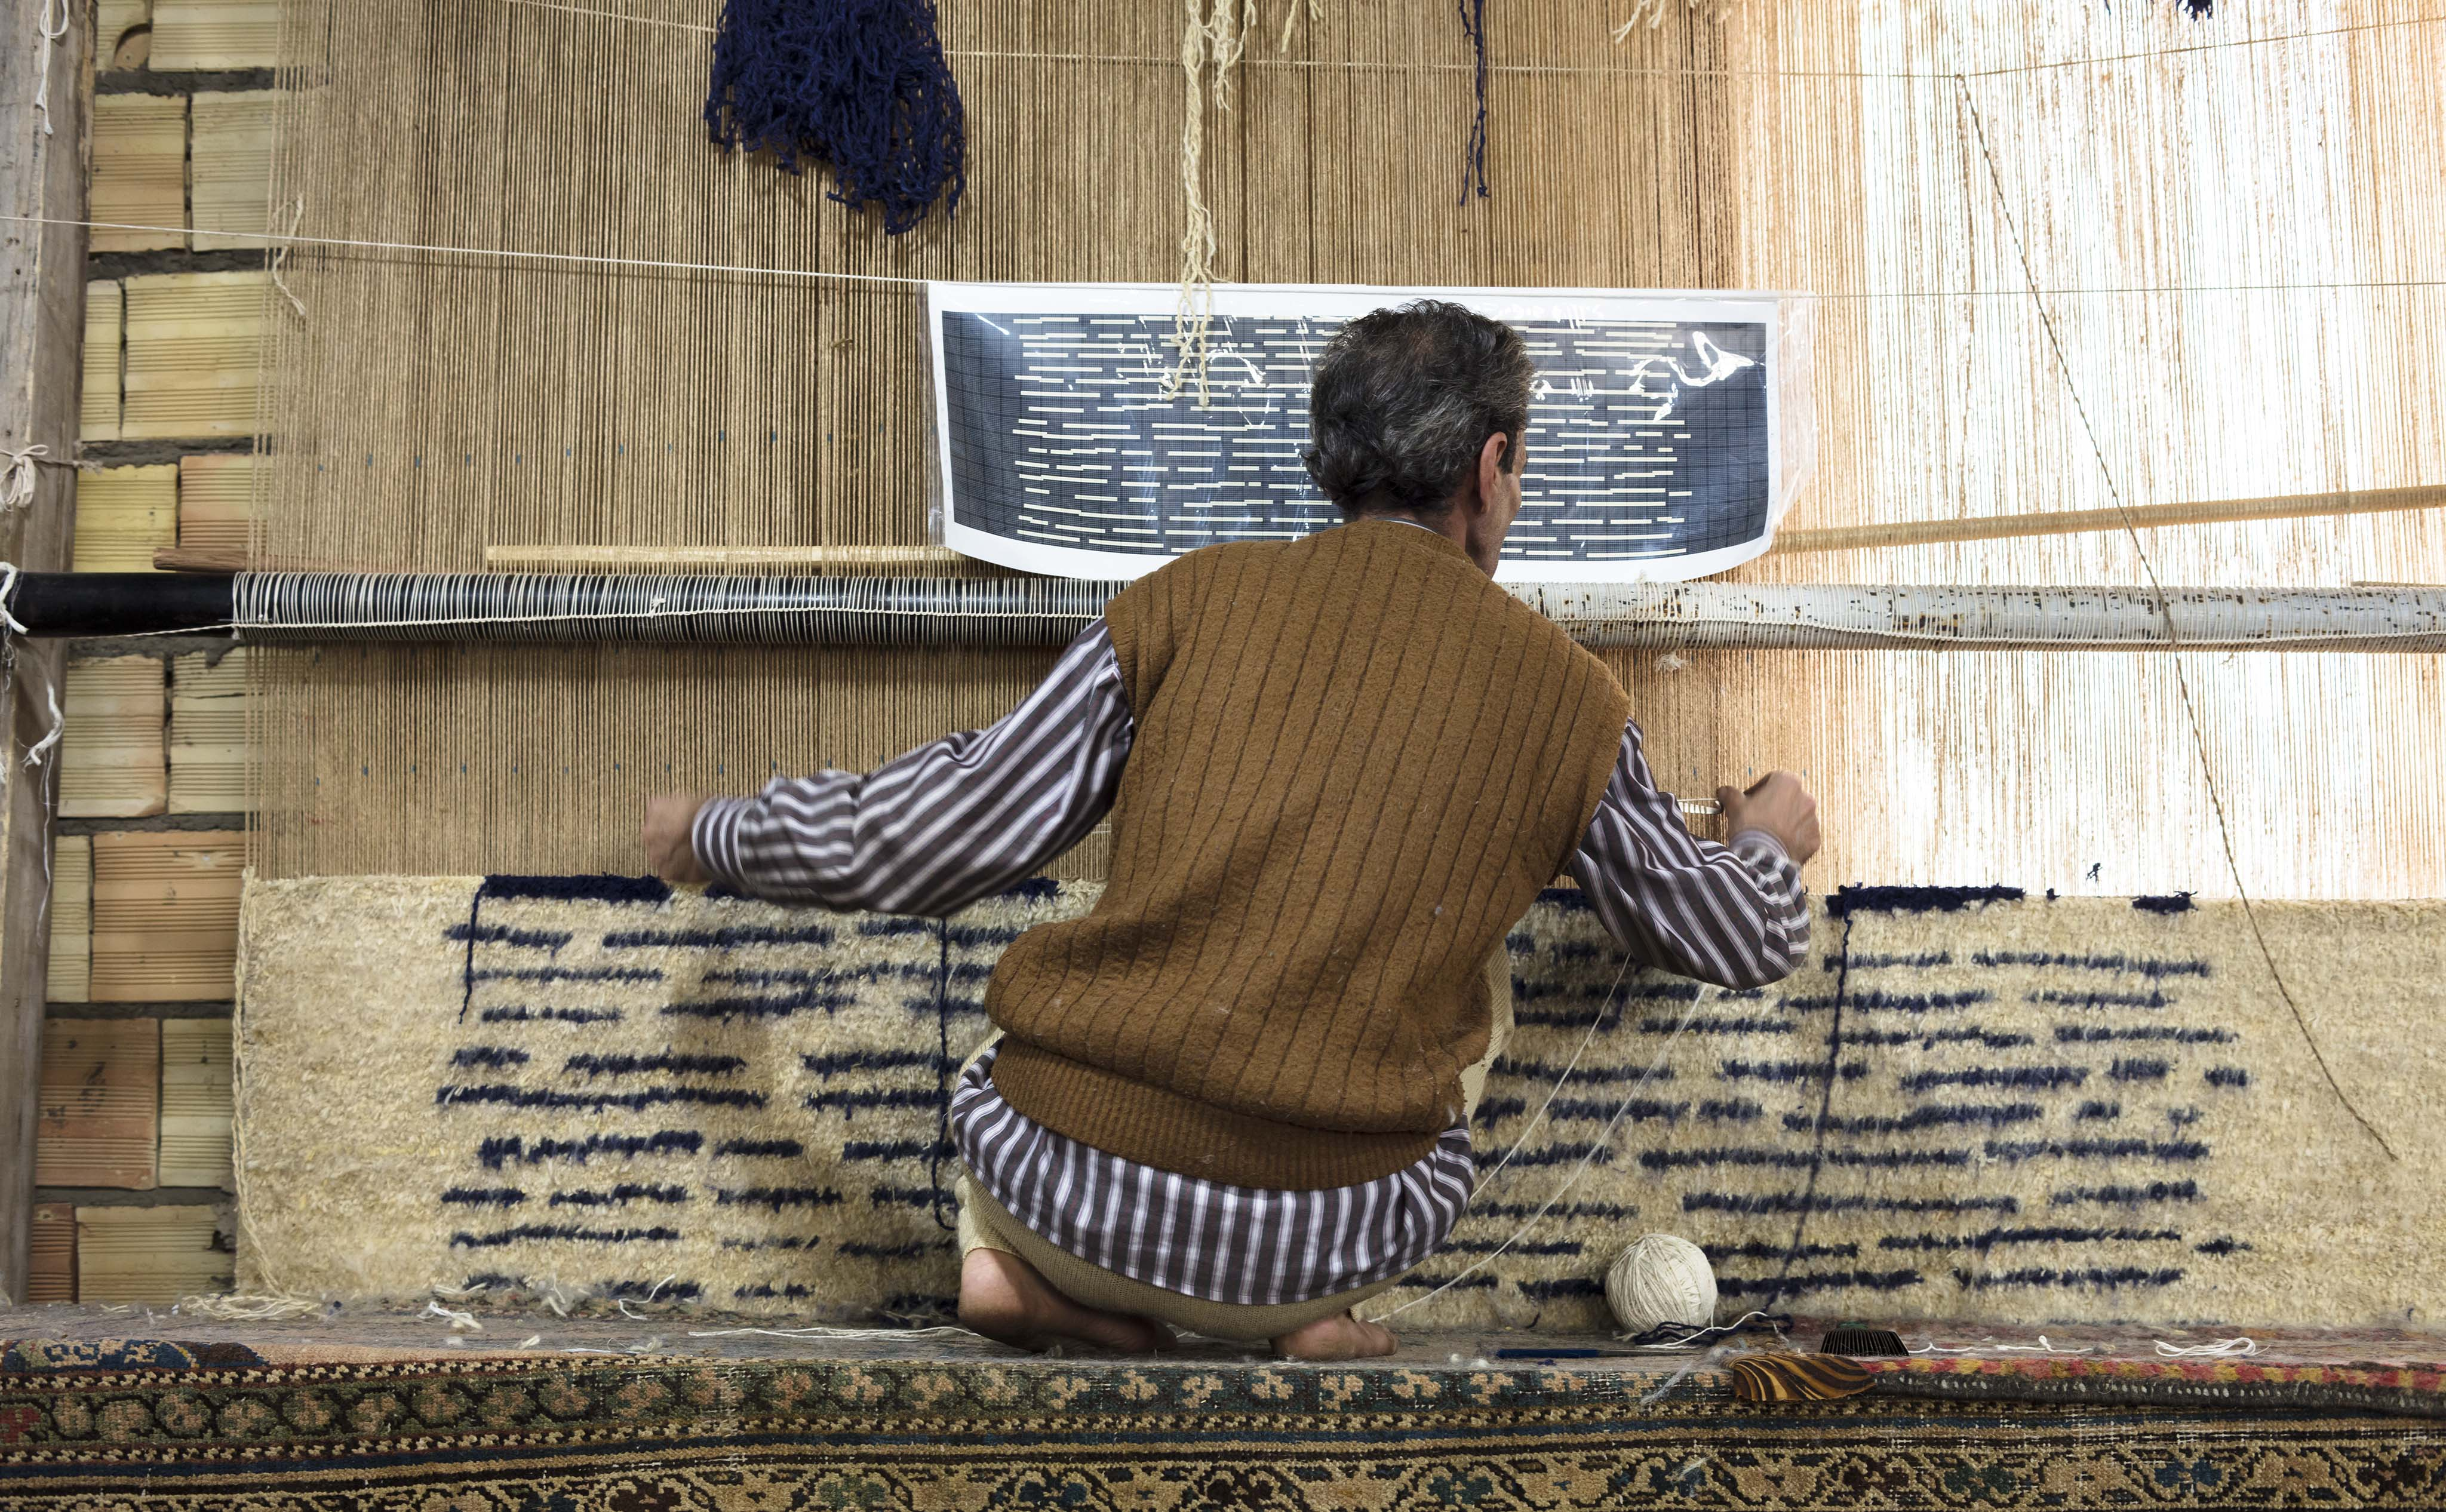 A carpet from the 'Silence Azerbaijan Collection' by Nasser Nishaburi is shown on loom in Tabriz, Iran, the historic capital of West Azerbaijan Province. | Image courtesy of Nasser Nishaburi.